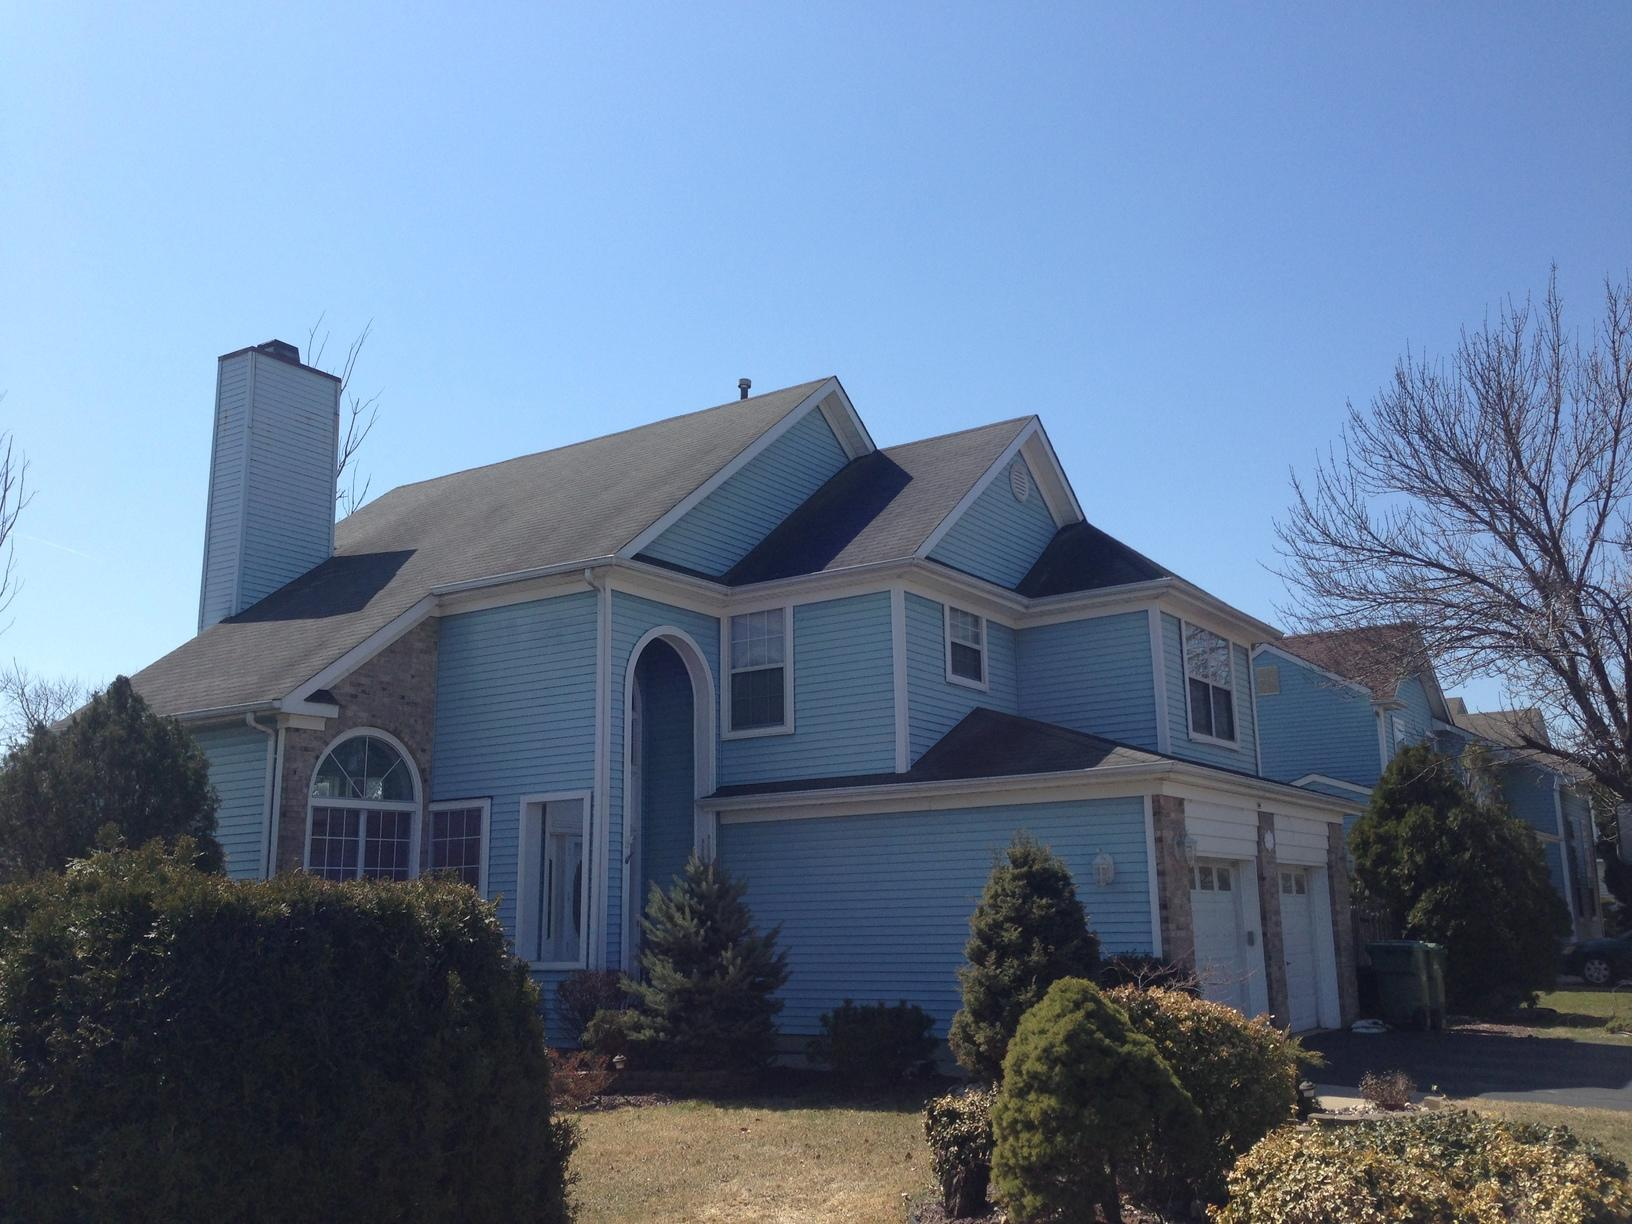 Sayreville NJ New Roof Replacement by More Core Construction - Before Photo